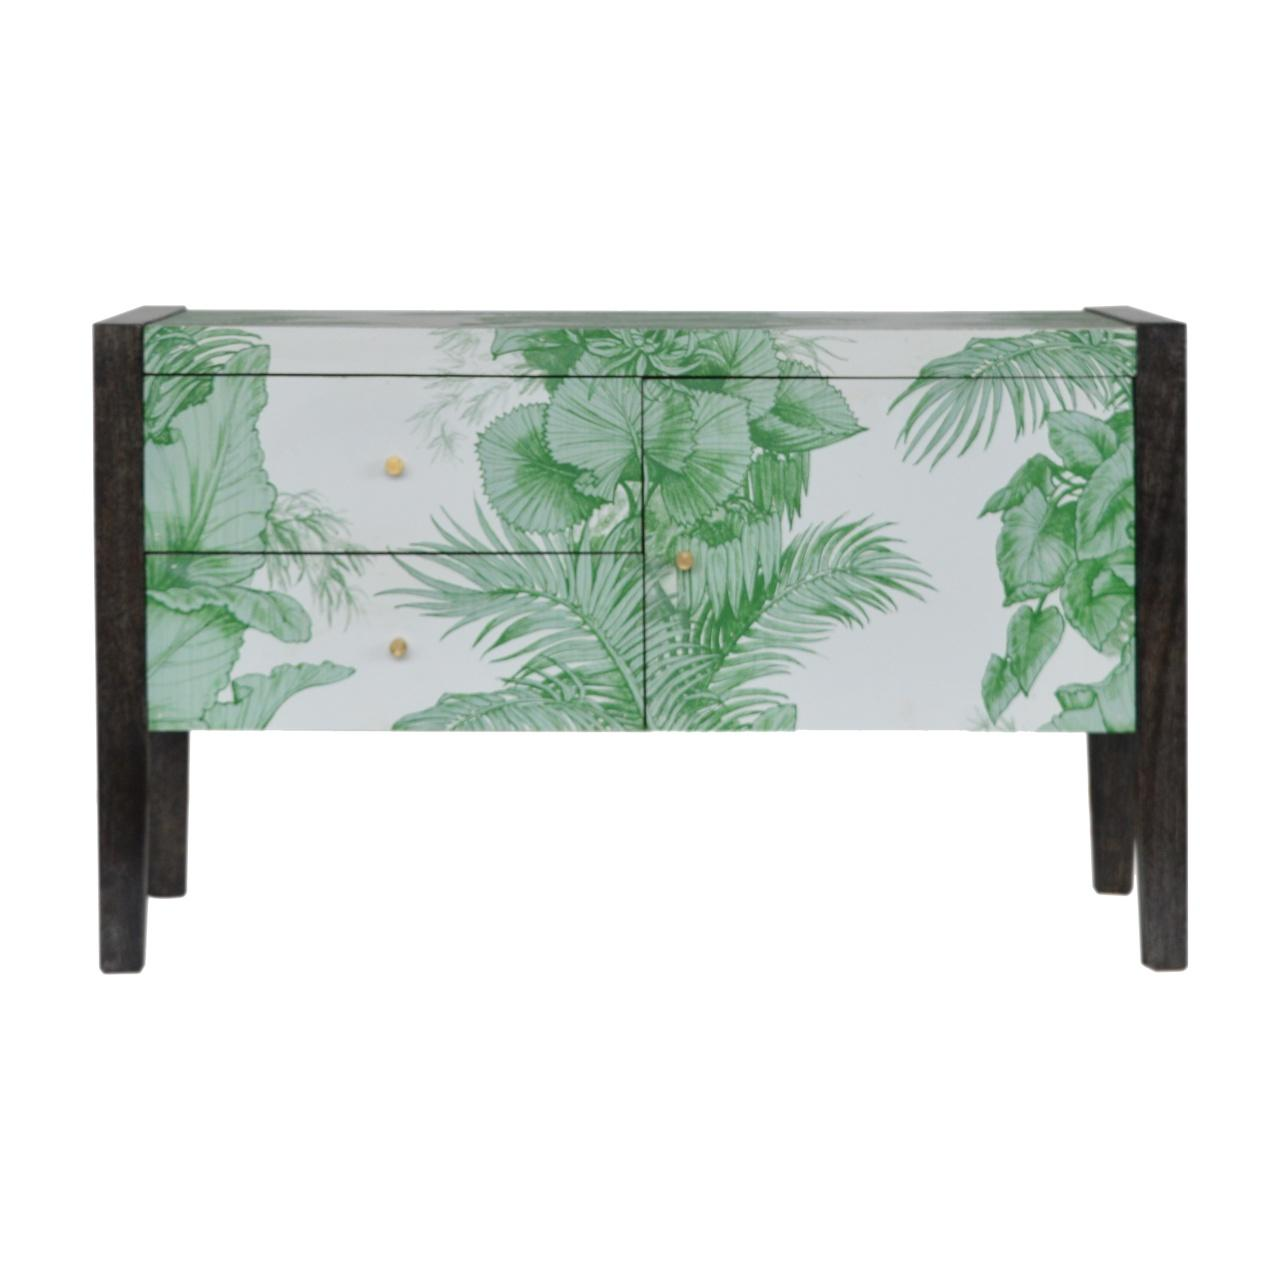 Avanti Club Tropicana 2.0 Media Unit